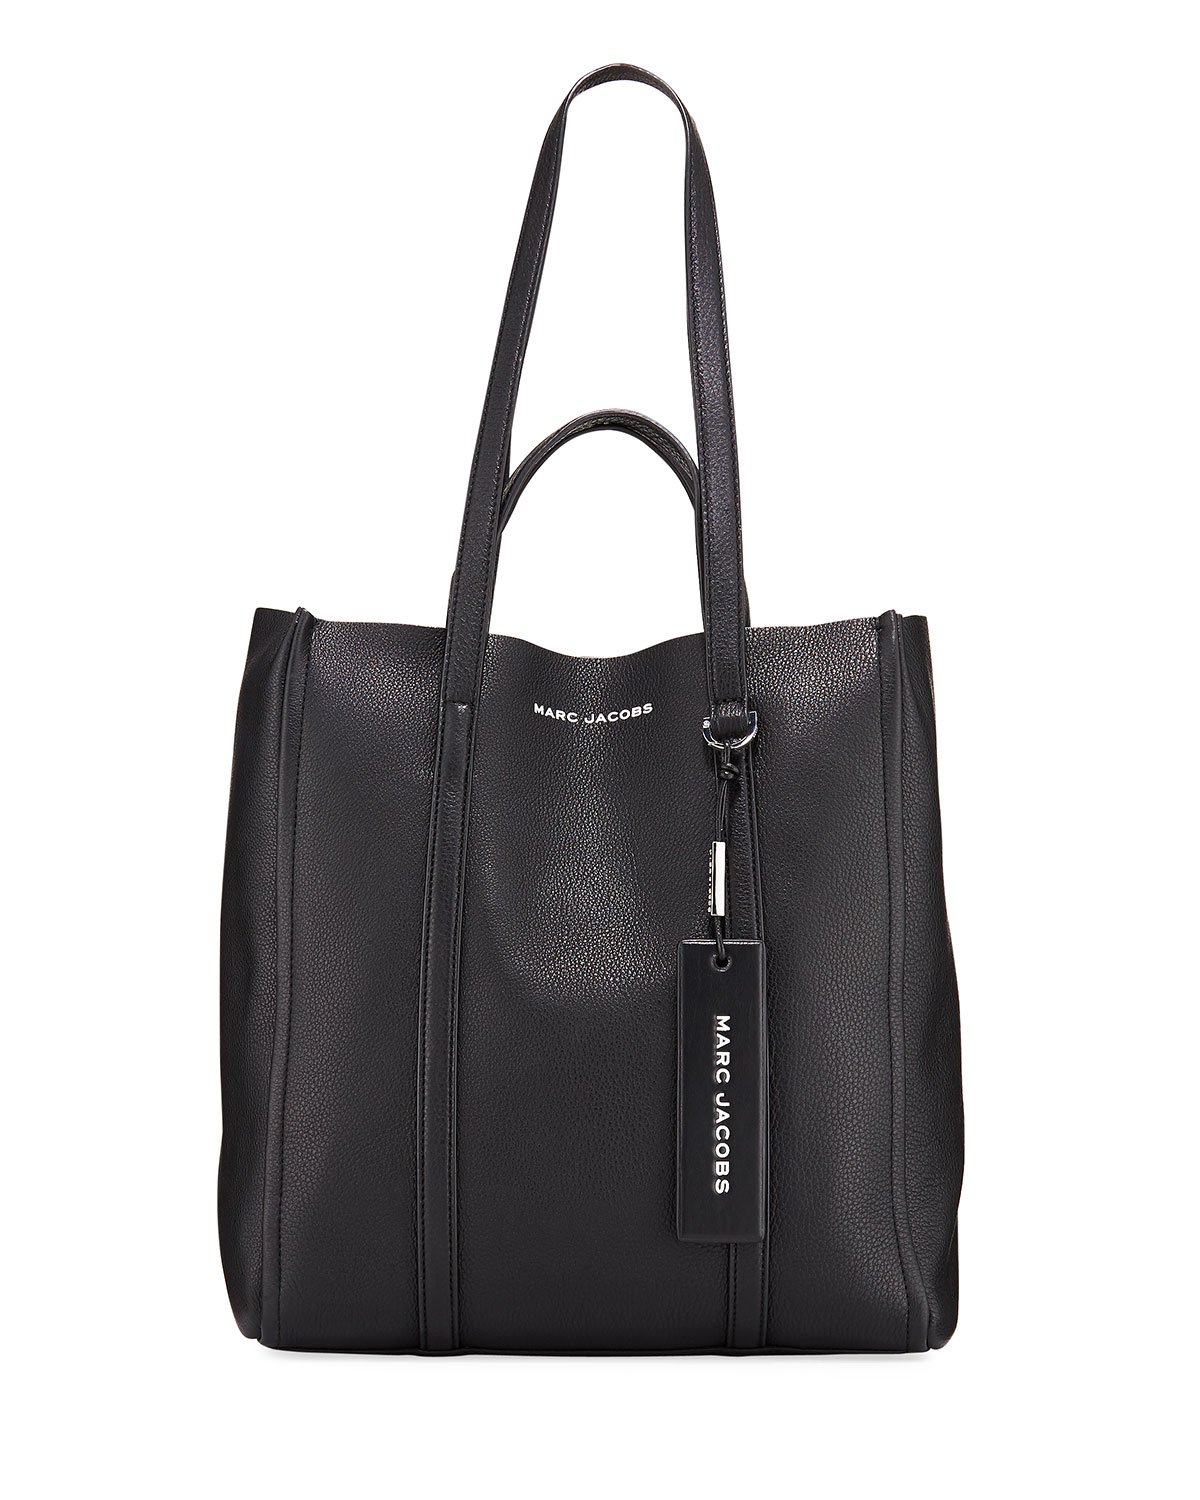 Marc Jacobs Totes THE TAG LEATHER TOTE BAG